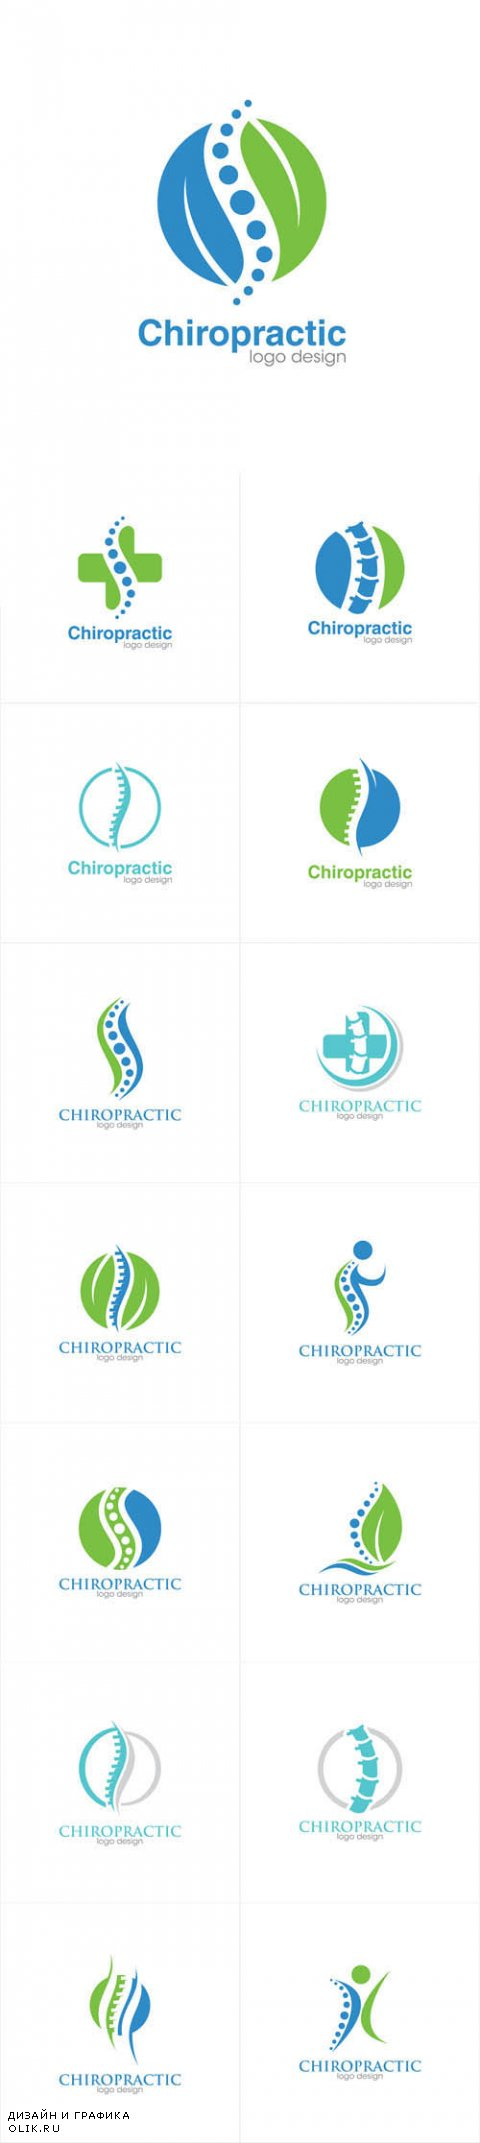 Vector Medical Chiropractic Creative Concept Logo Design Template